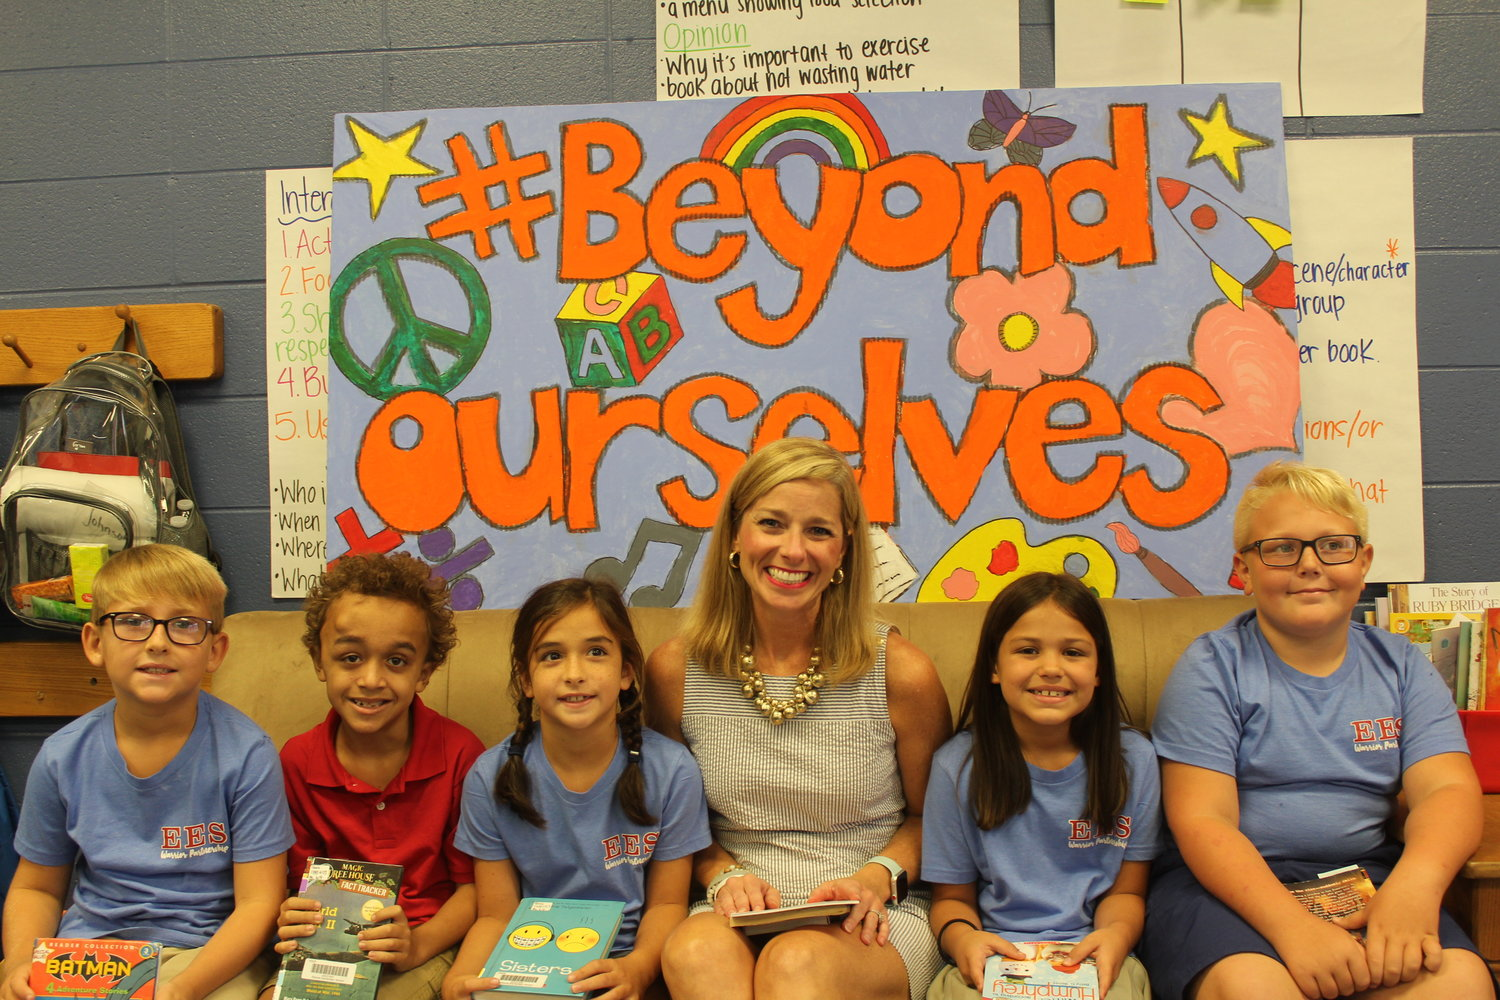 Principal Jenny Breazeale is spreading a positive message to Elberta Elementary students and staff through the #BeyondOurselves initiative.